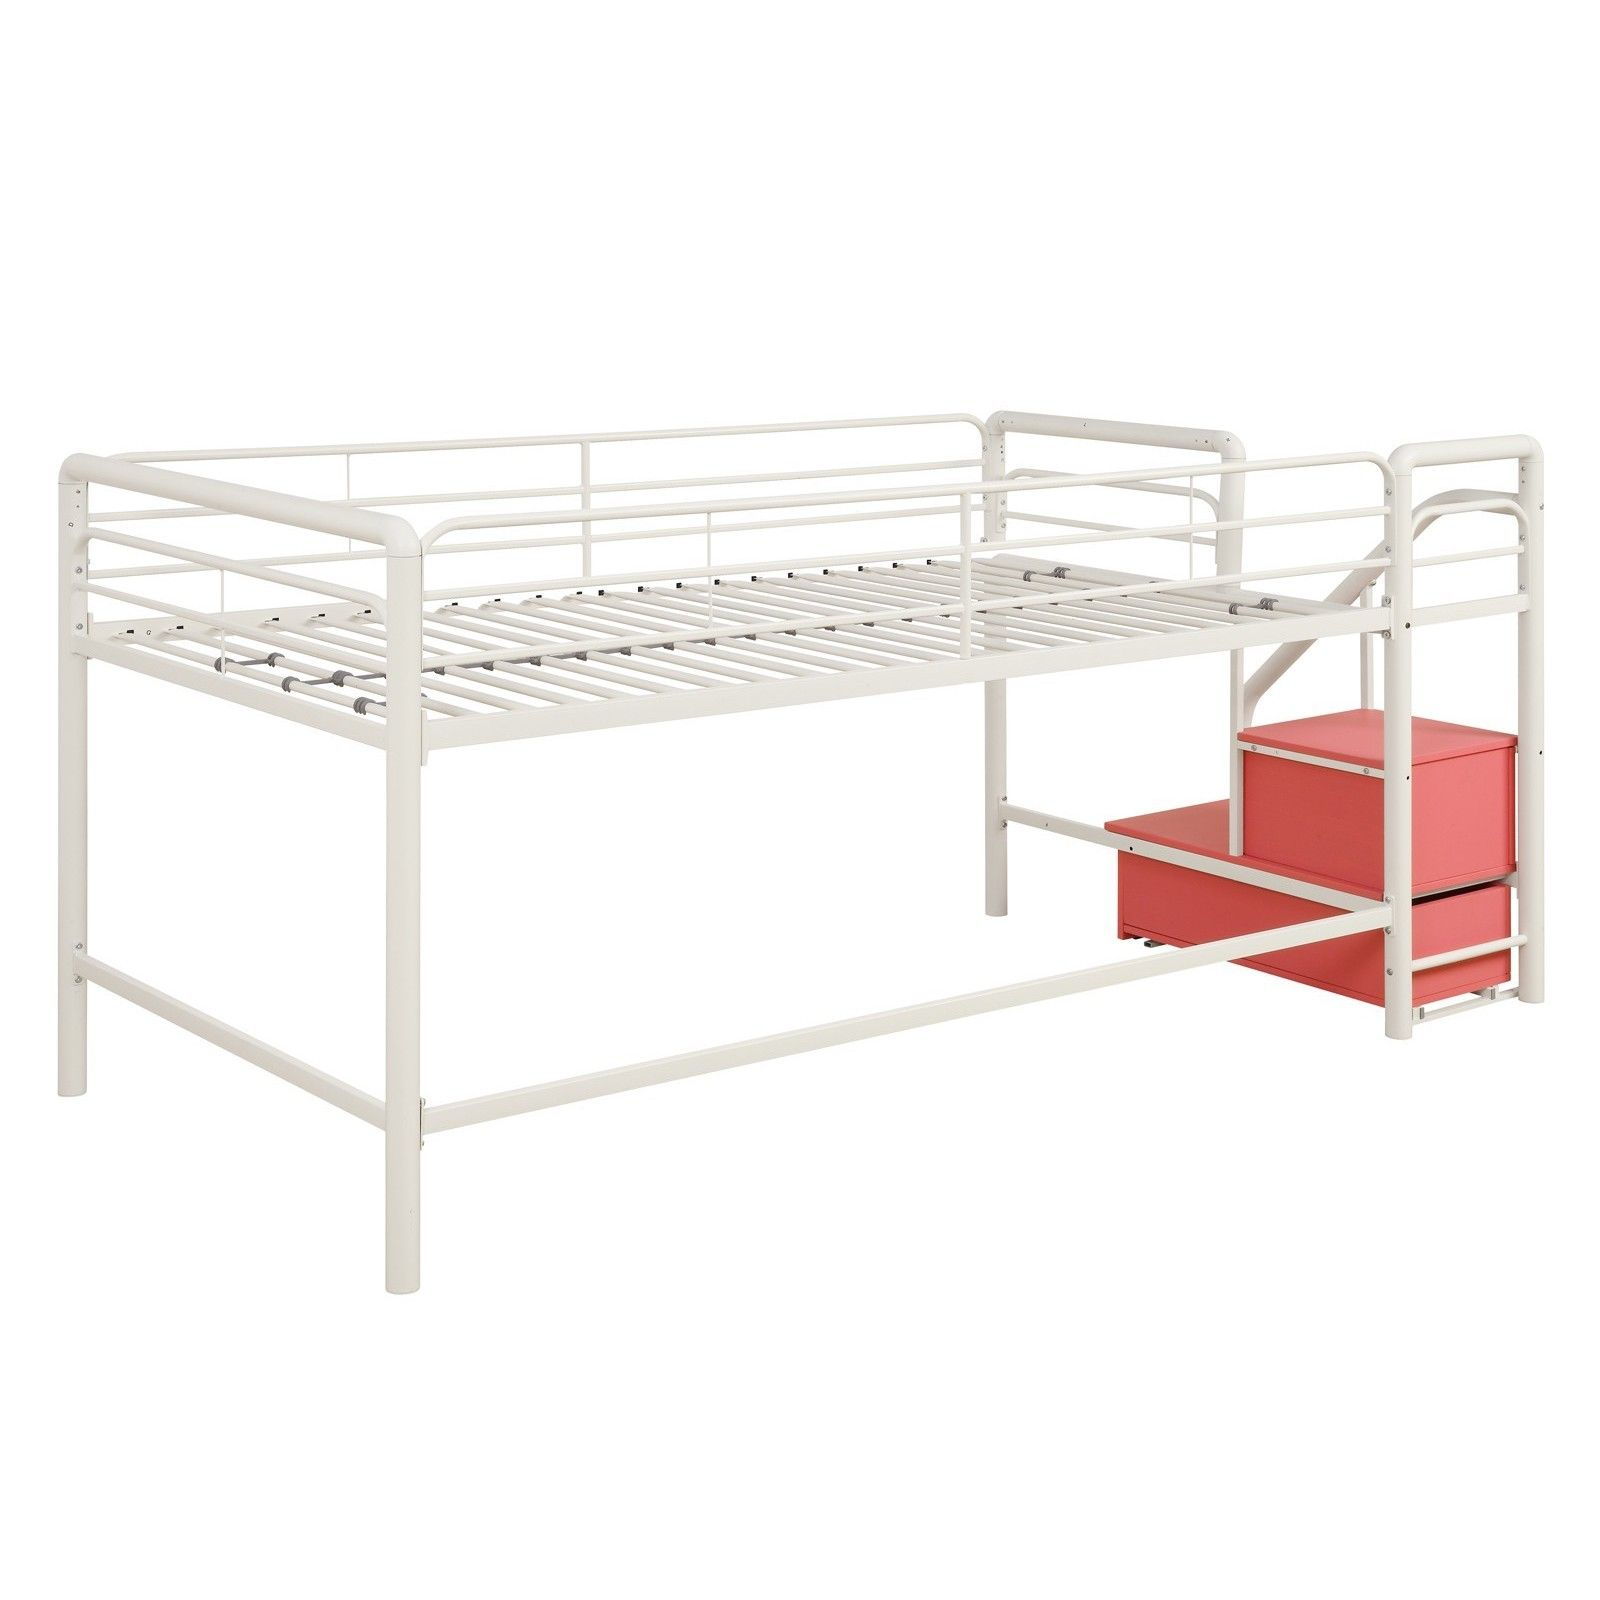 Boys' twin loft bed with storage steps  Your child will love staying underneath the loft and hiding their